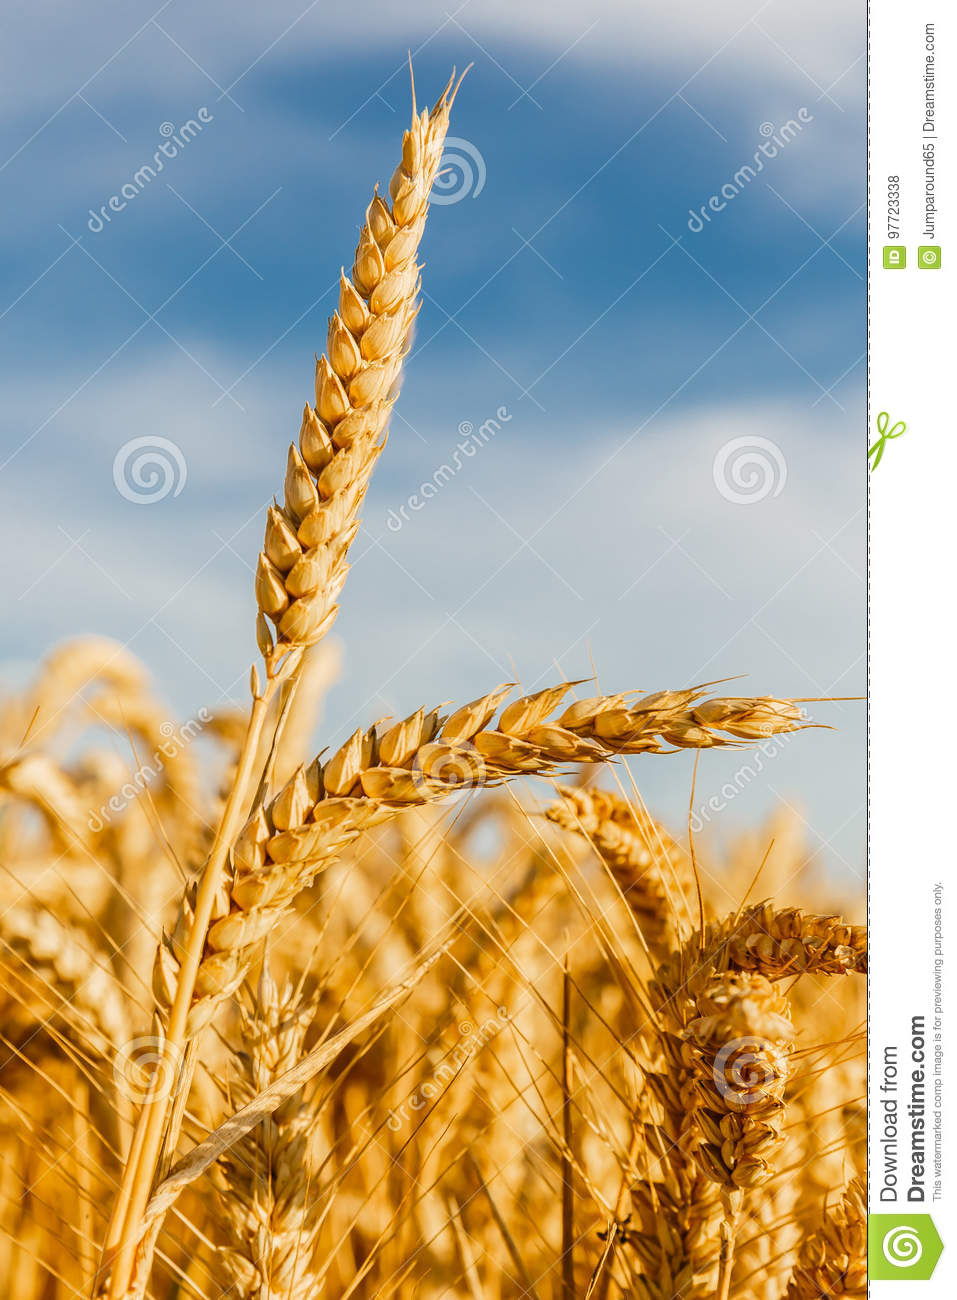 Grain in a farm field